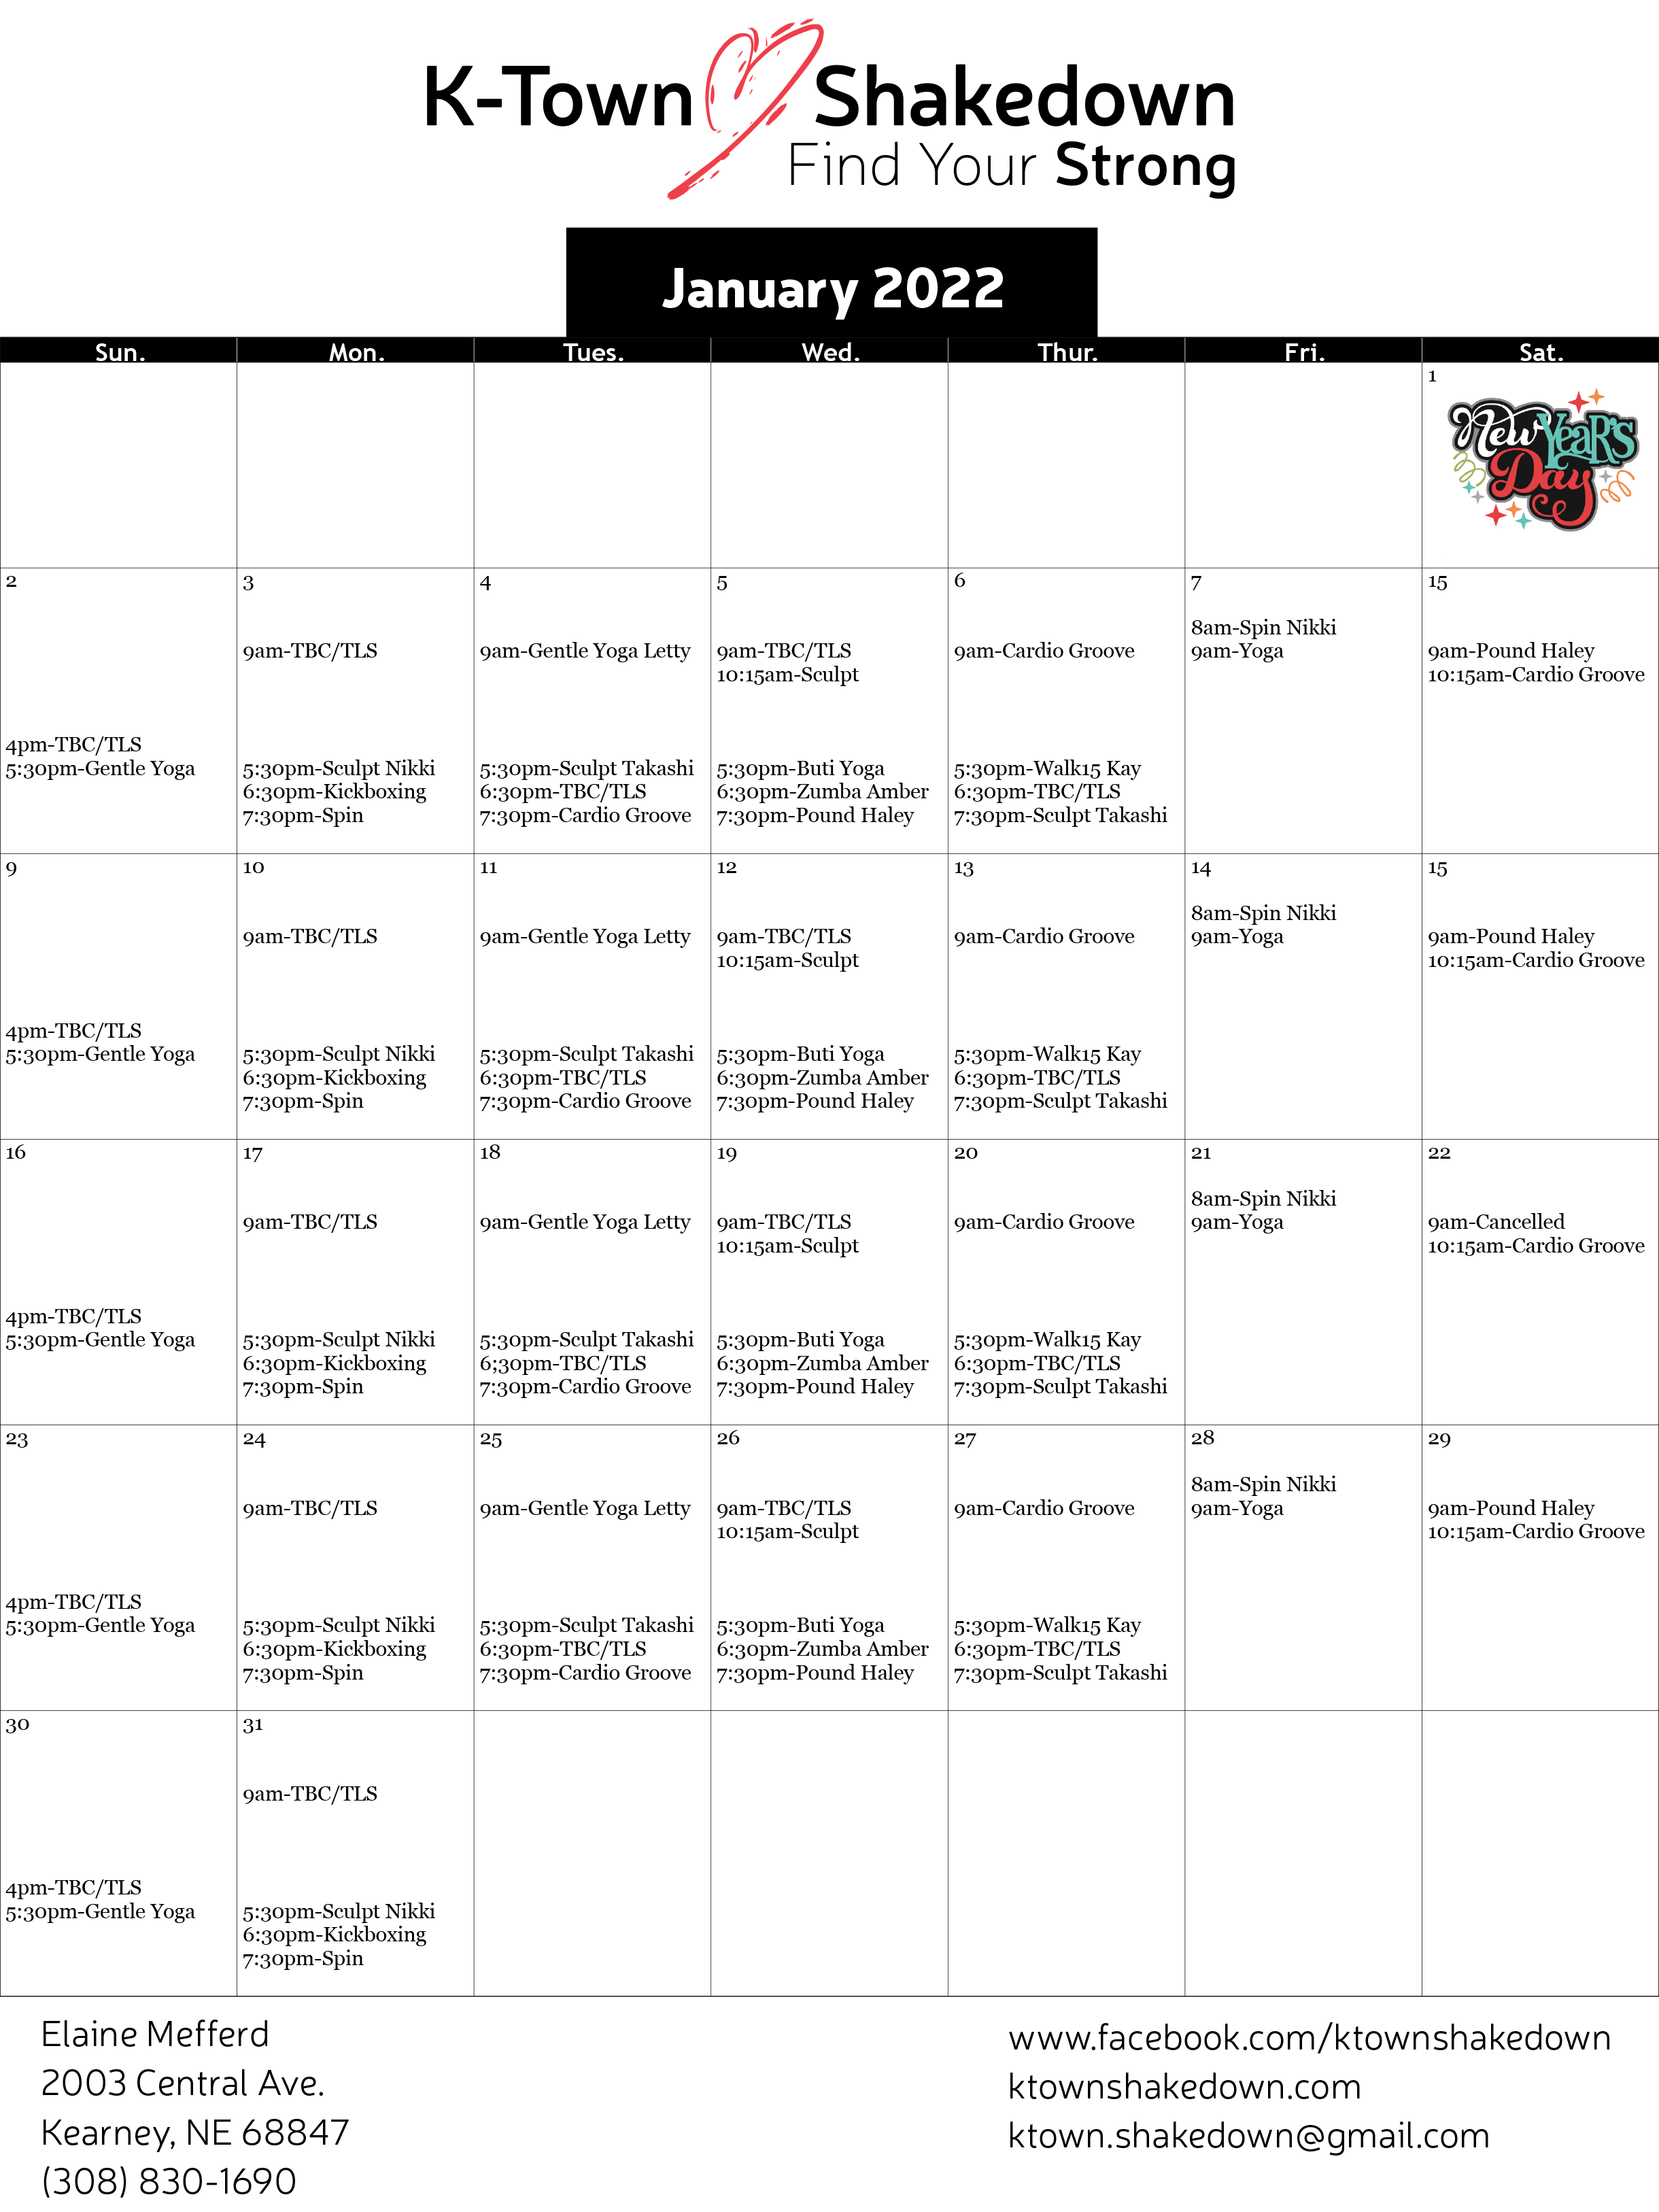 January Schedule